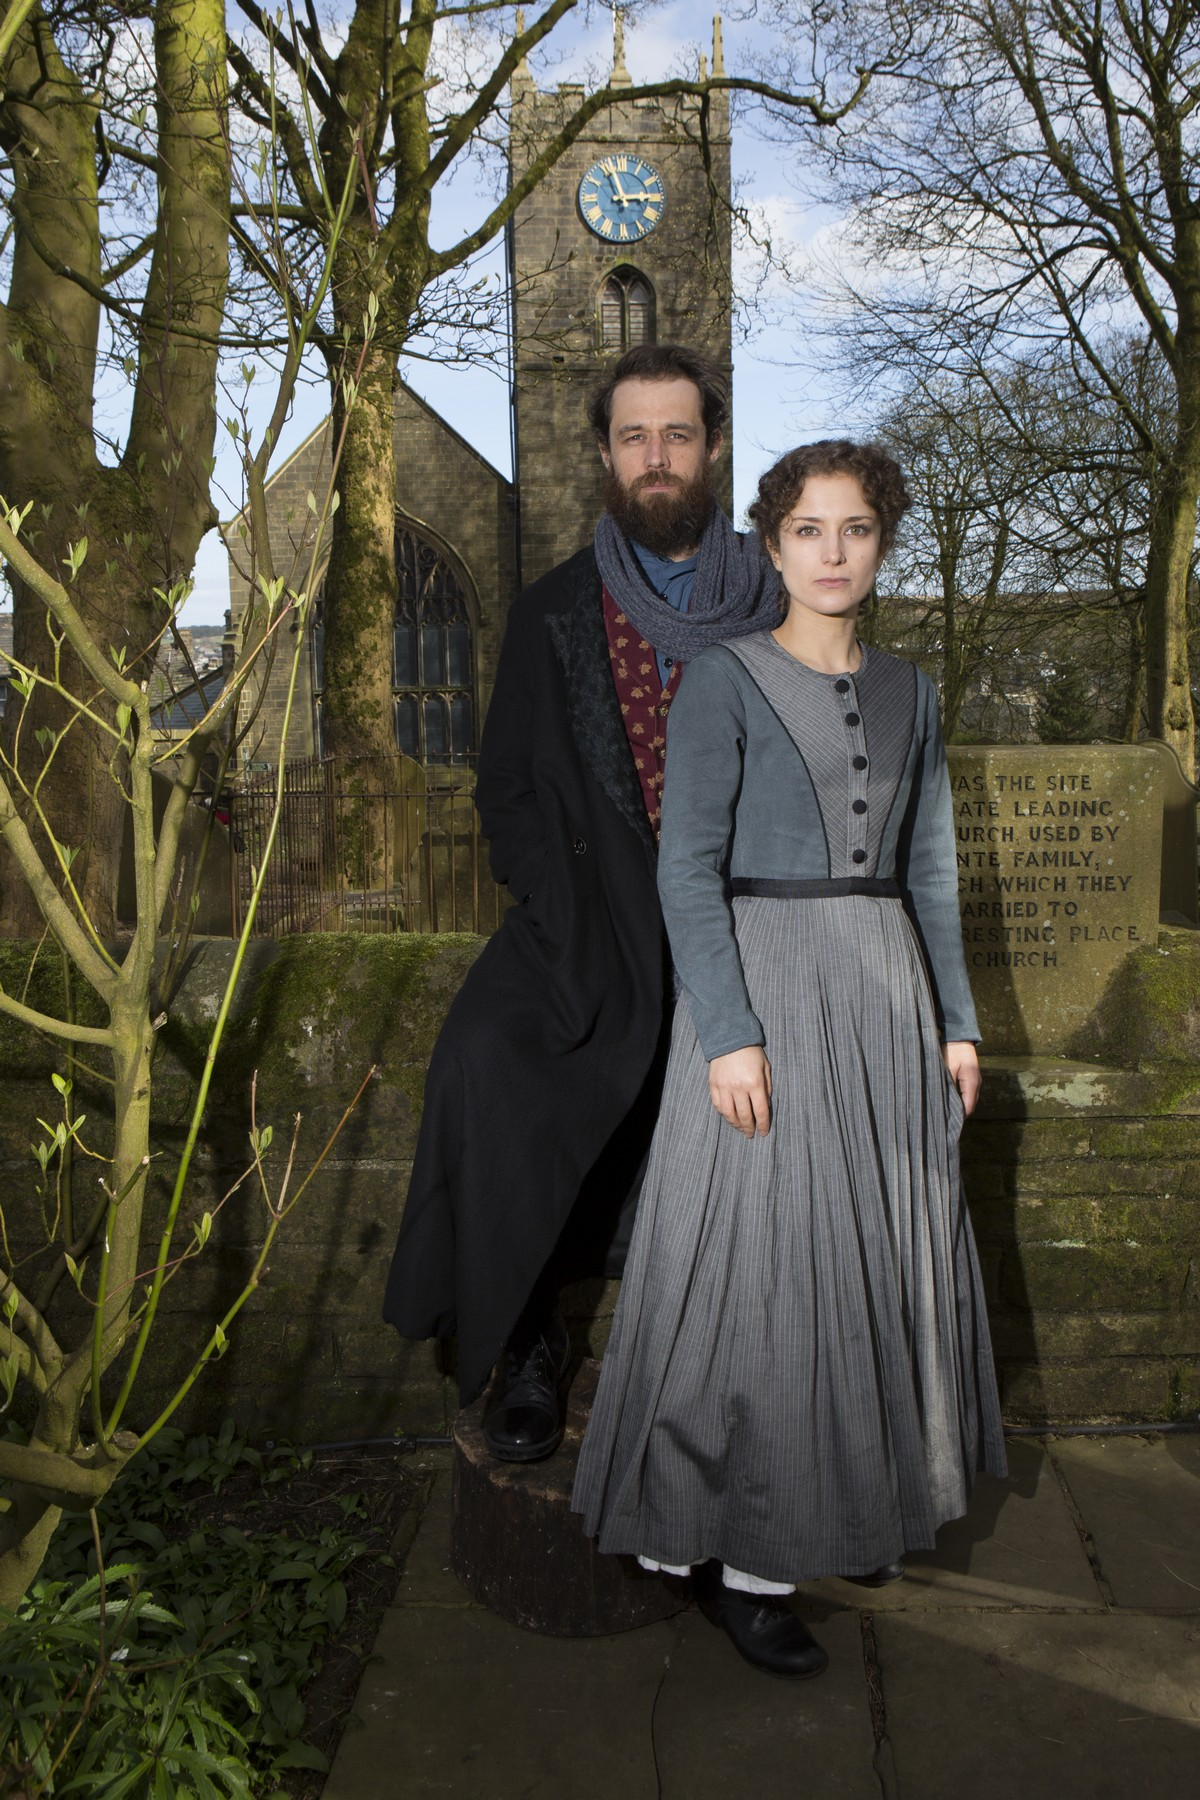 jane eyre writing style Free barron's booknotes-jane eyre by charlotte the style of jane eyre is bronte is often compared negatively with jane austen, whose writing is.